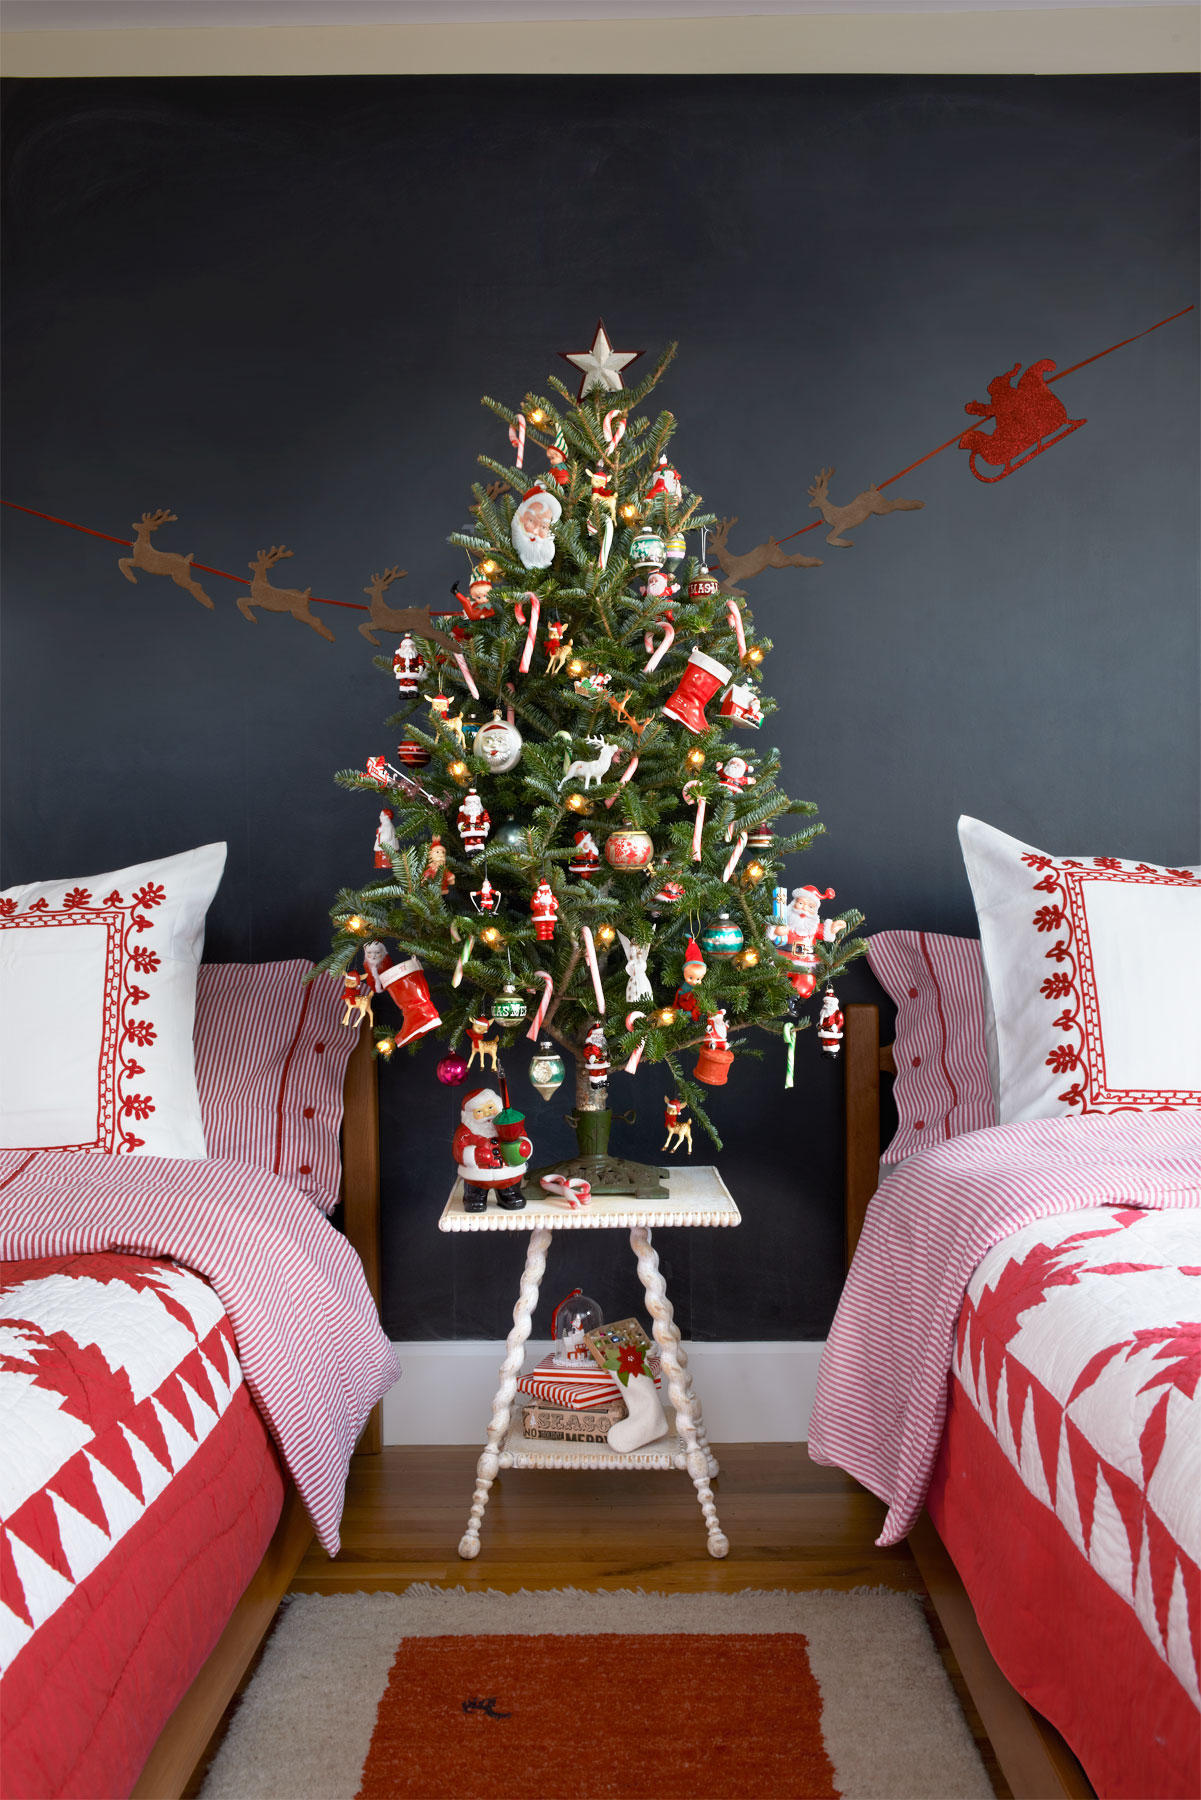 Decorating Ideas Christmas 60+ best christmas tree decorating ideas - how to decorate a